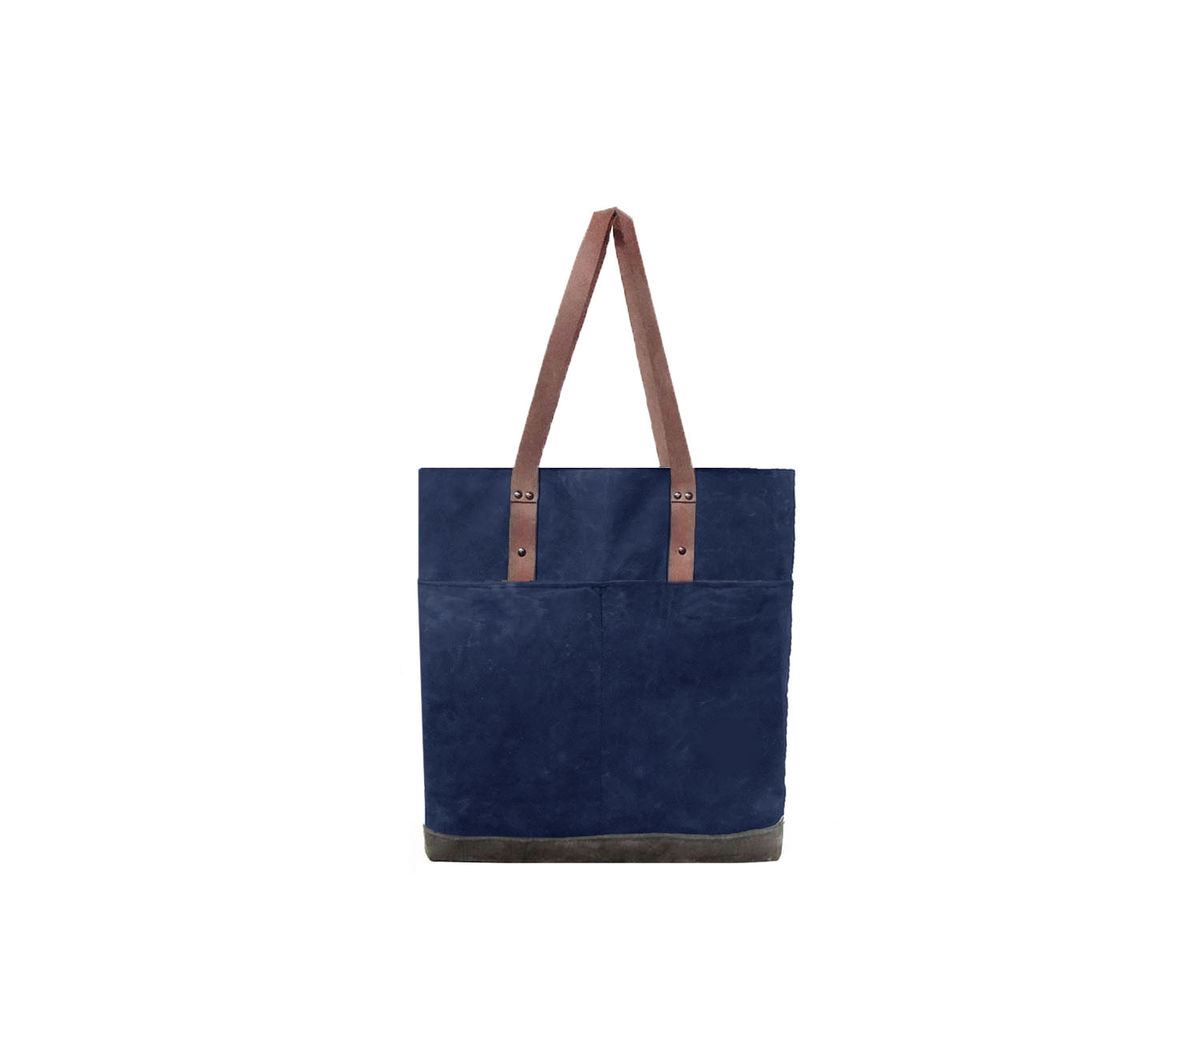 Quarters Pocket Waxed Canvas Tote - Sailor Blue and Leather - product images  of